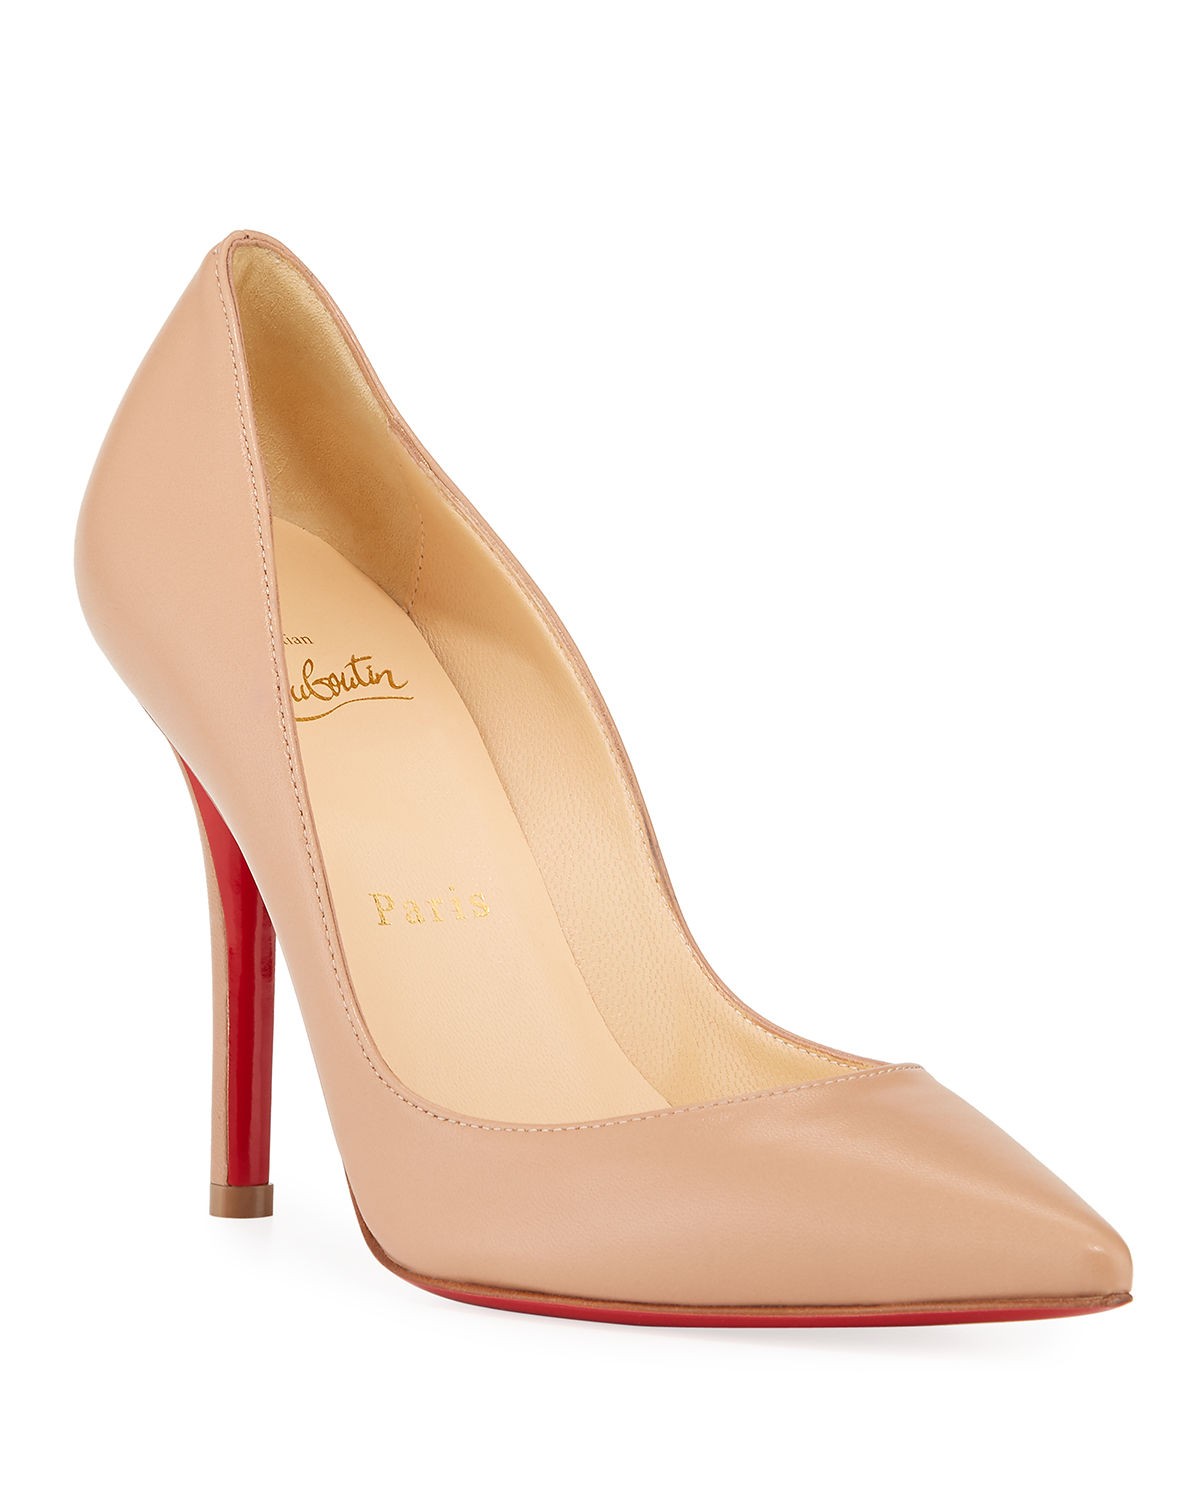 c42d262dd004 Christian Louboutin Apostrophy Pointed Red-Sole Pump